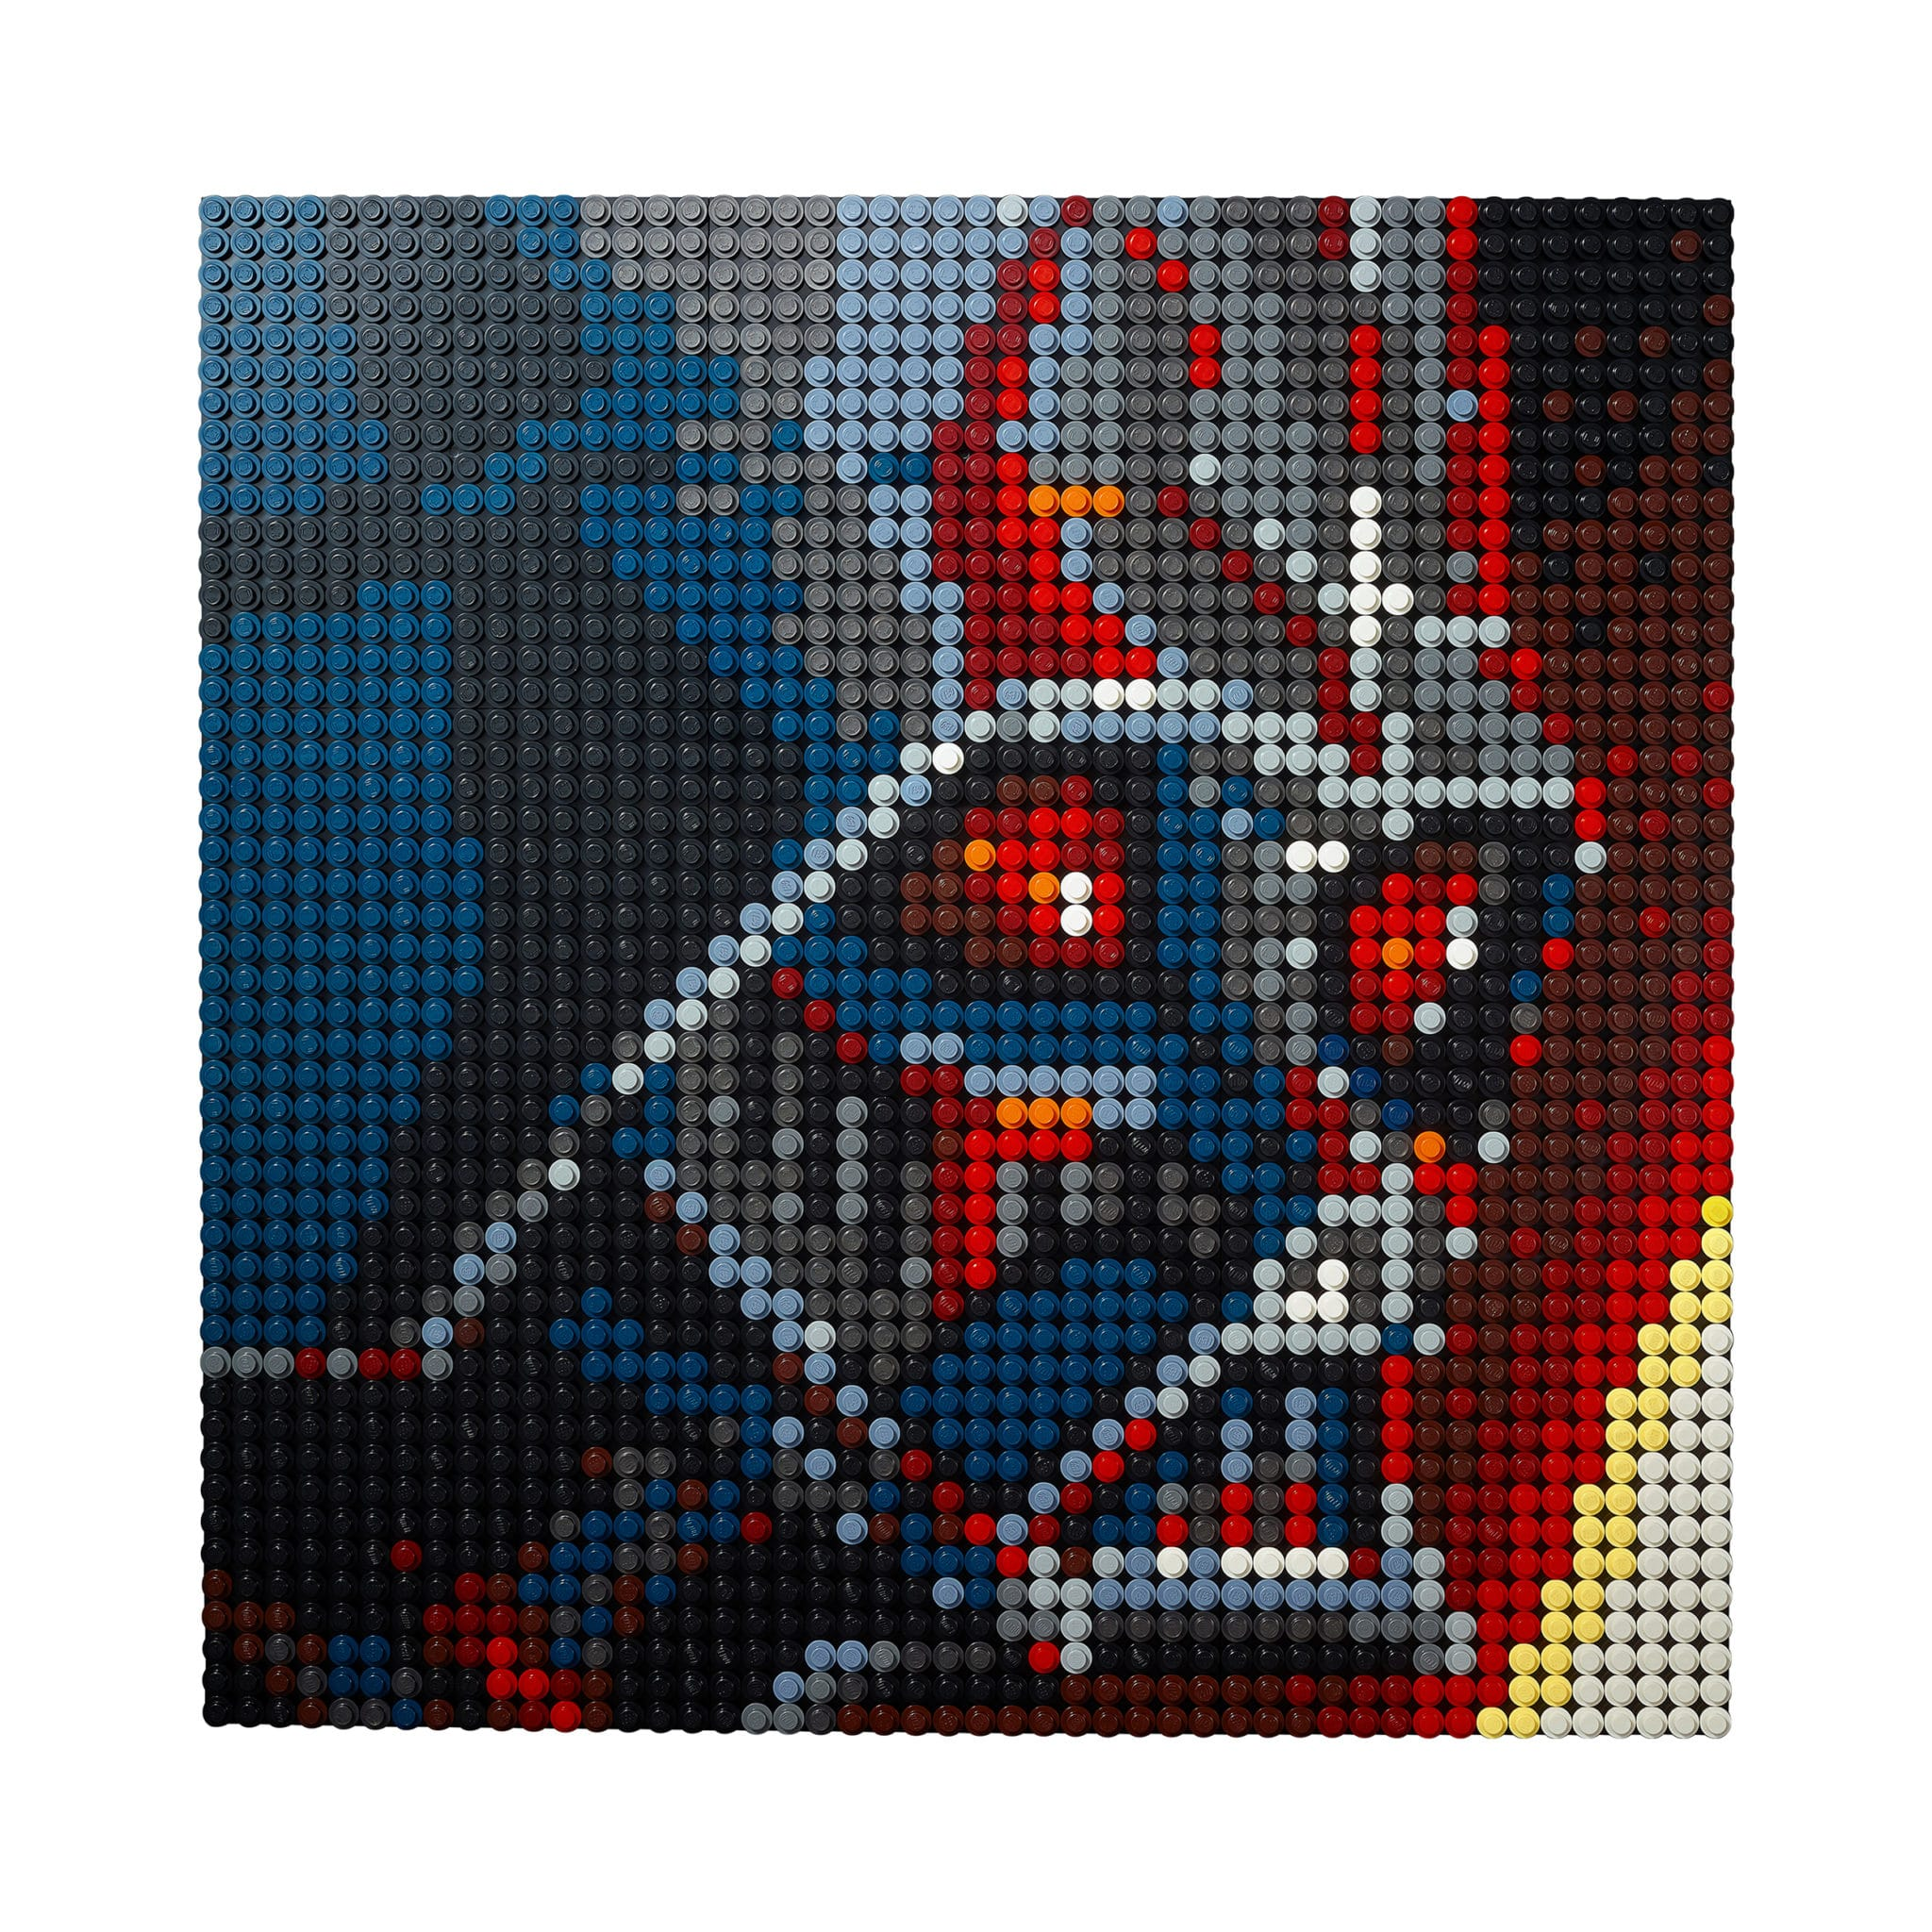 LEGO Art: Darth Vader (Original)